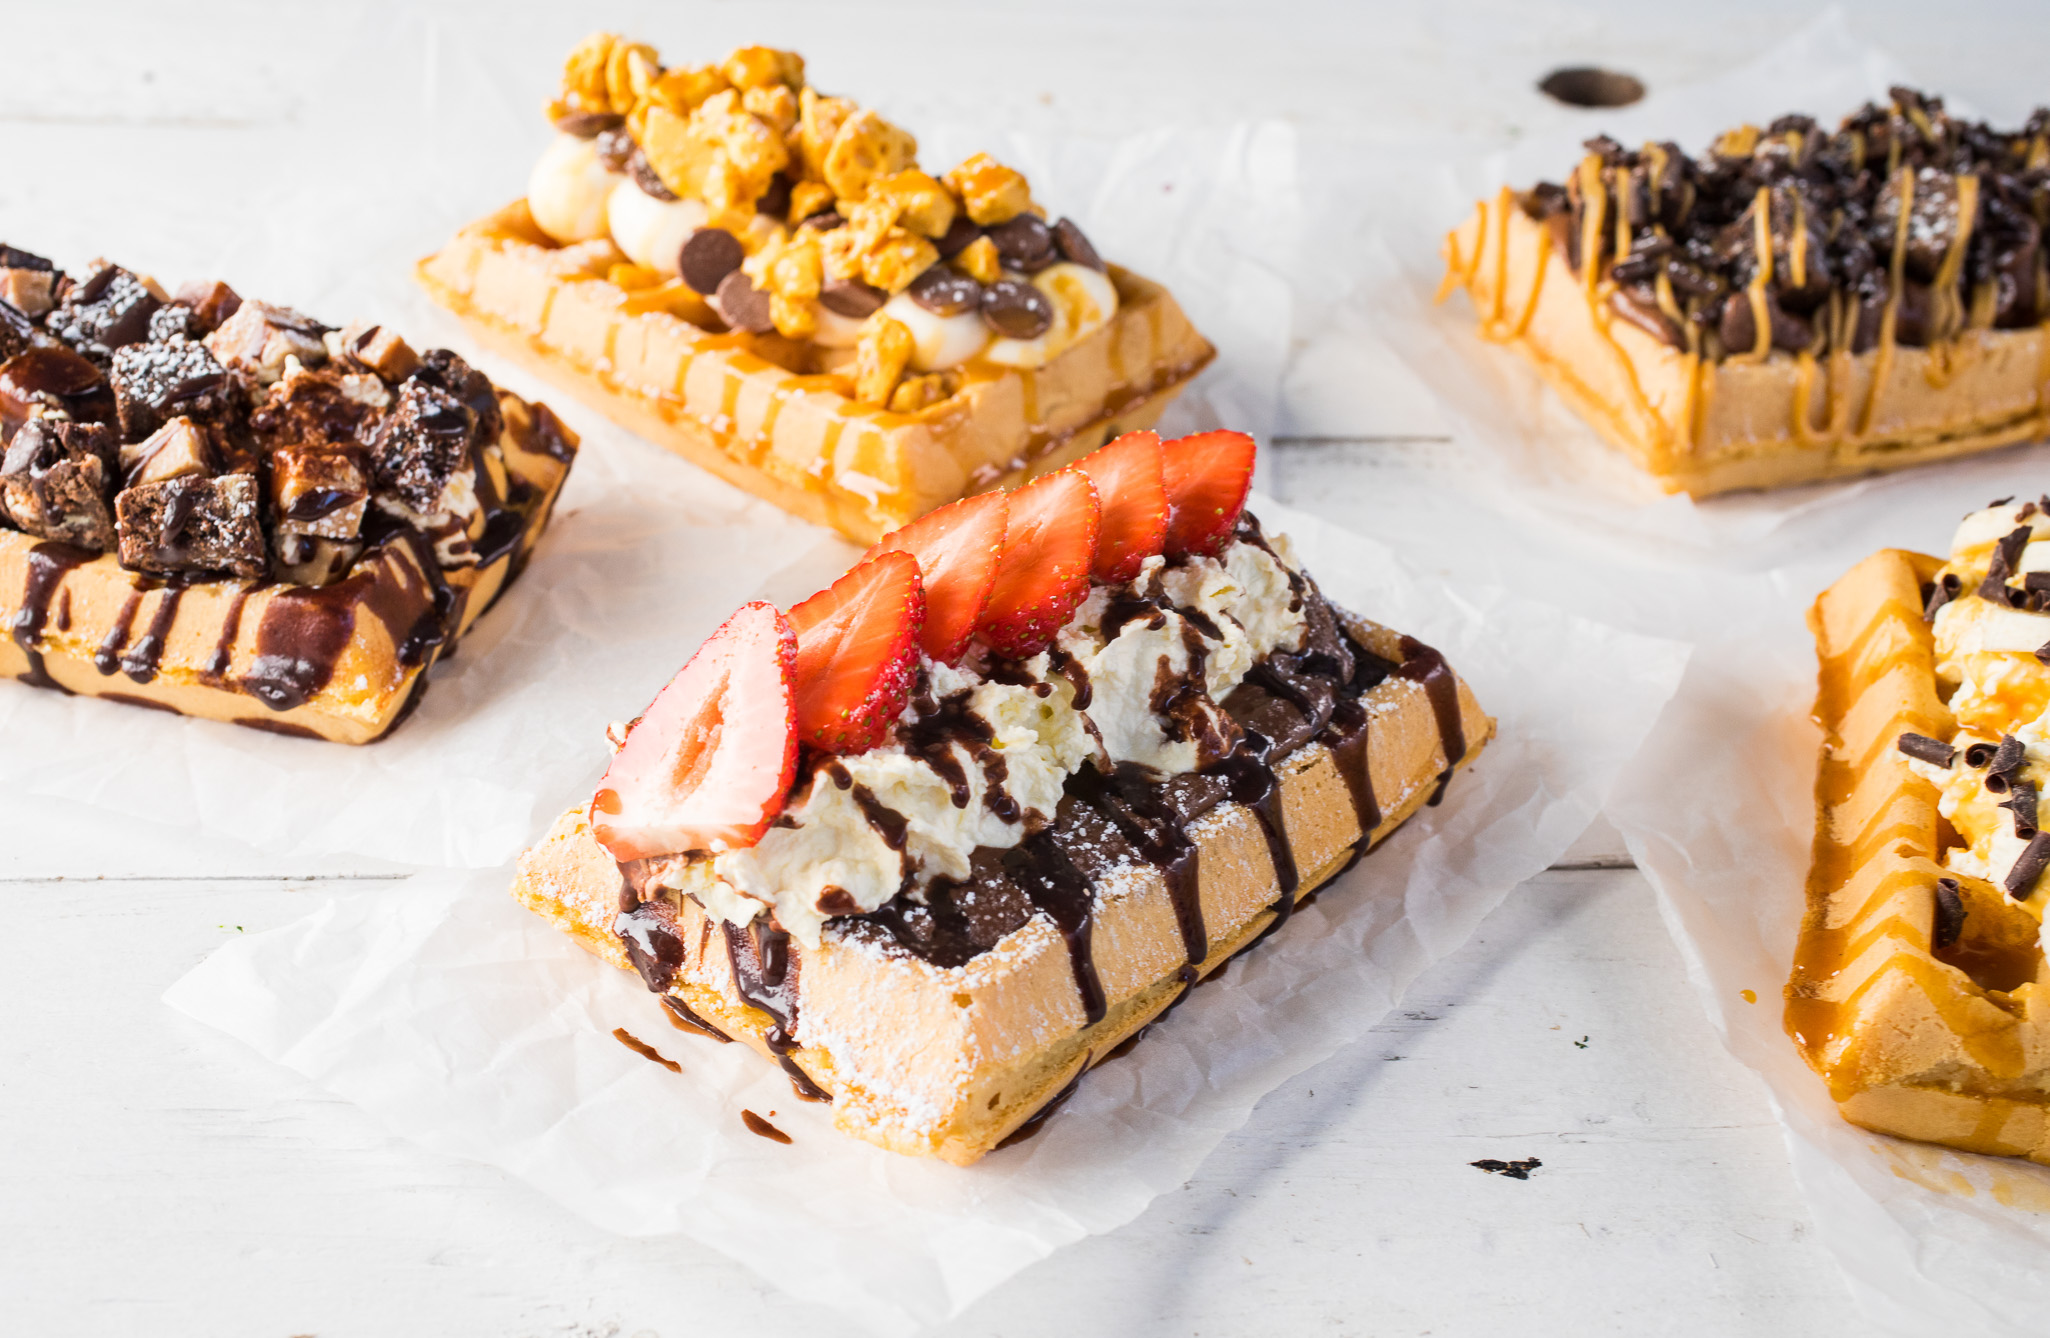 The waffles - All our waffles are baked fresh to order. Malted Belgium waffles topped with some classic topping and some unique